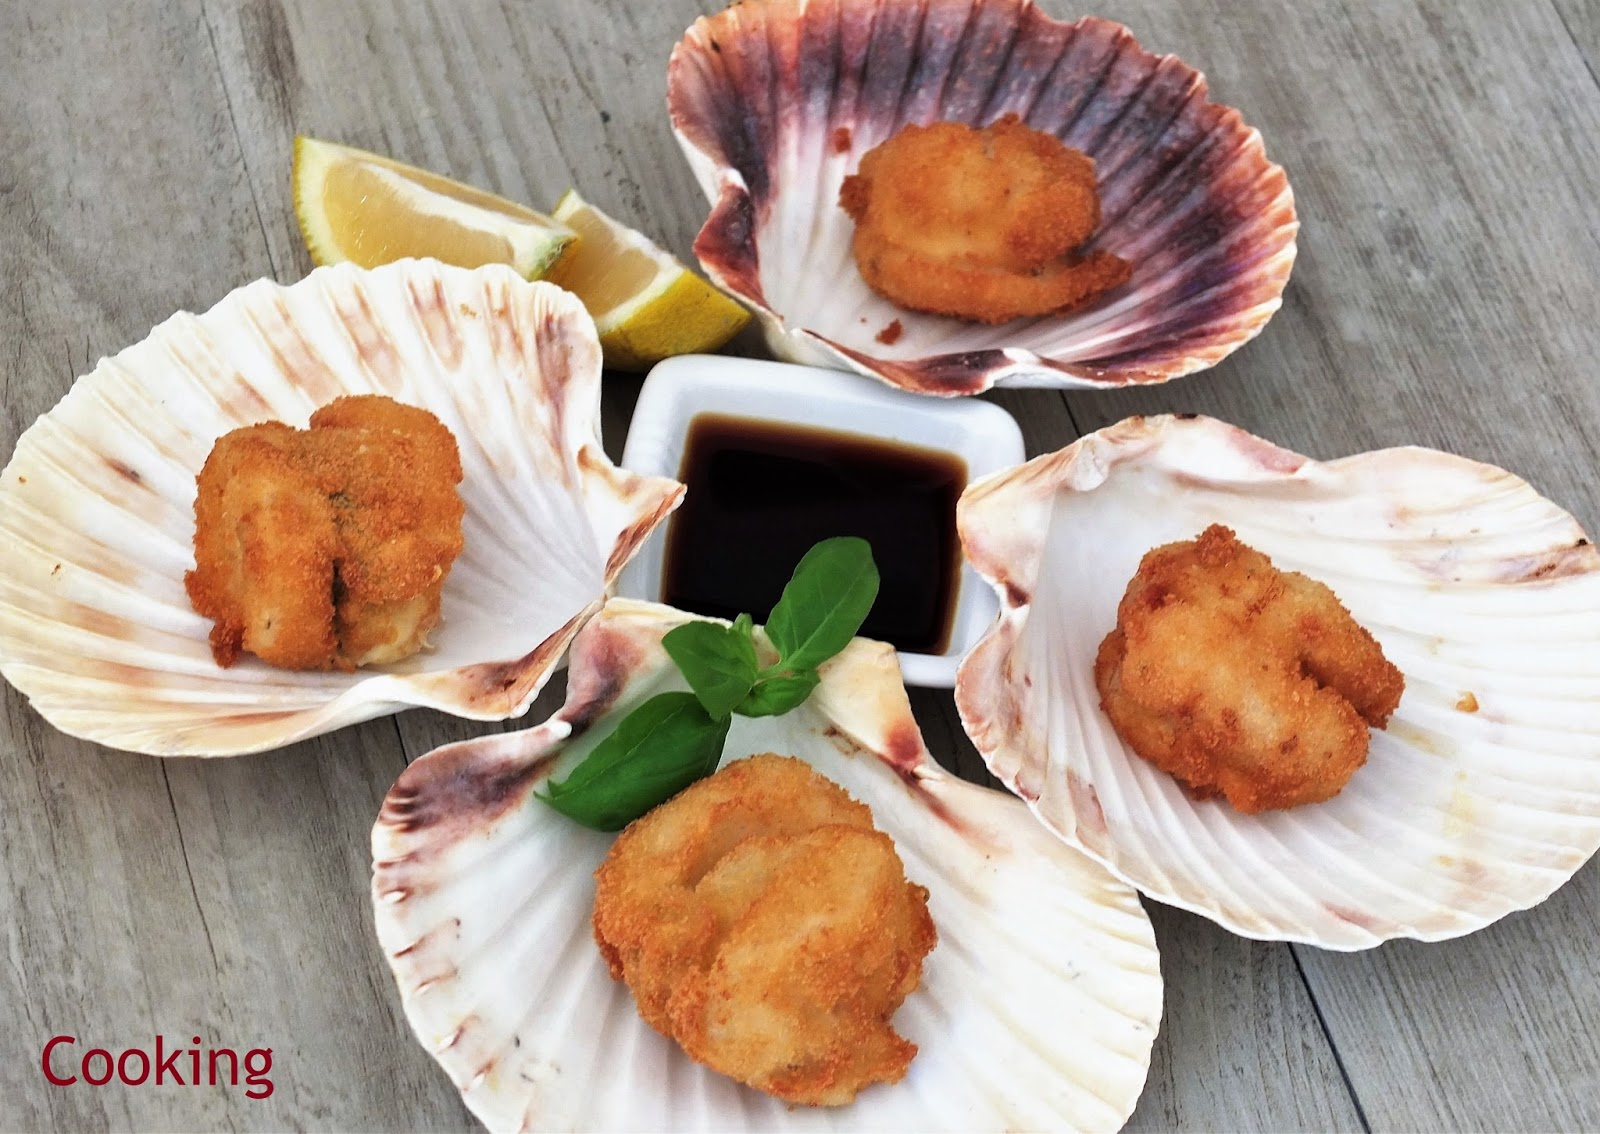 Scallops with mozzarella and ponzu sauce a recipe for fried scallops with mozzarella and basil from the book japanese cuisine with harumi harumi kurihara is the best known author of japanese fandeluxe Choice Image